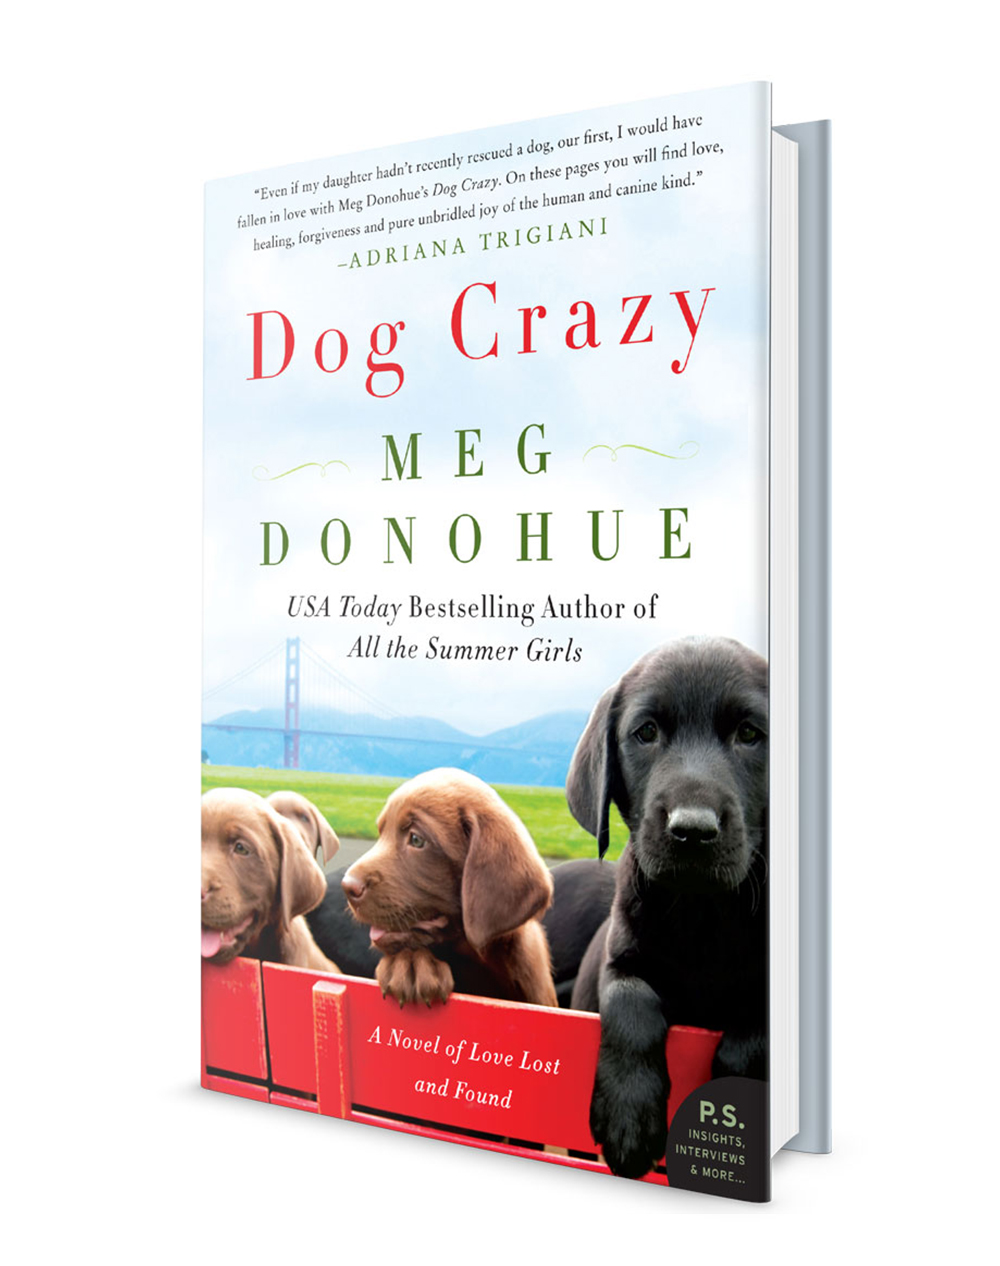 Dog-crazy_book-jacket.jpg